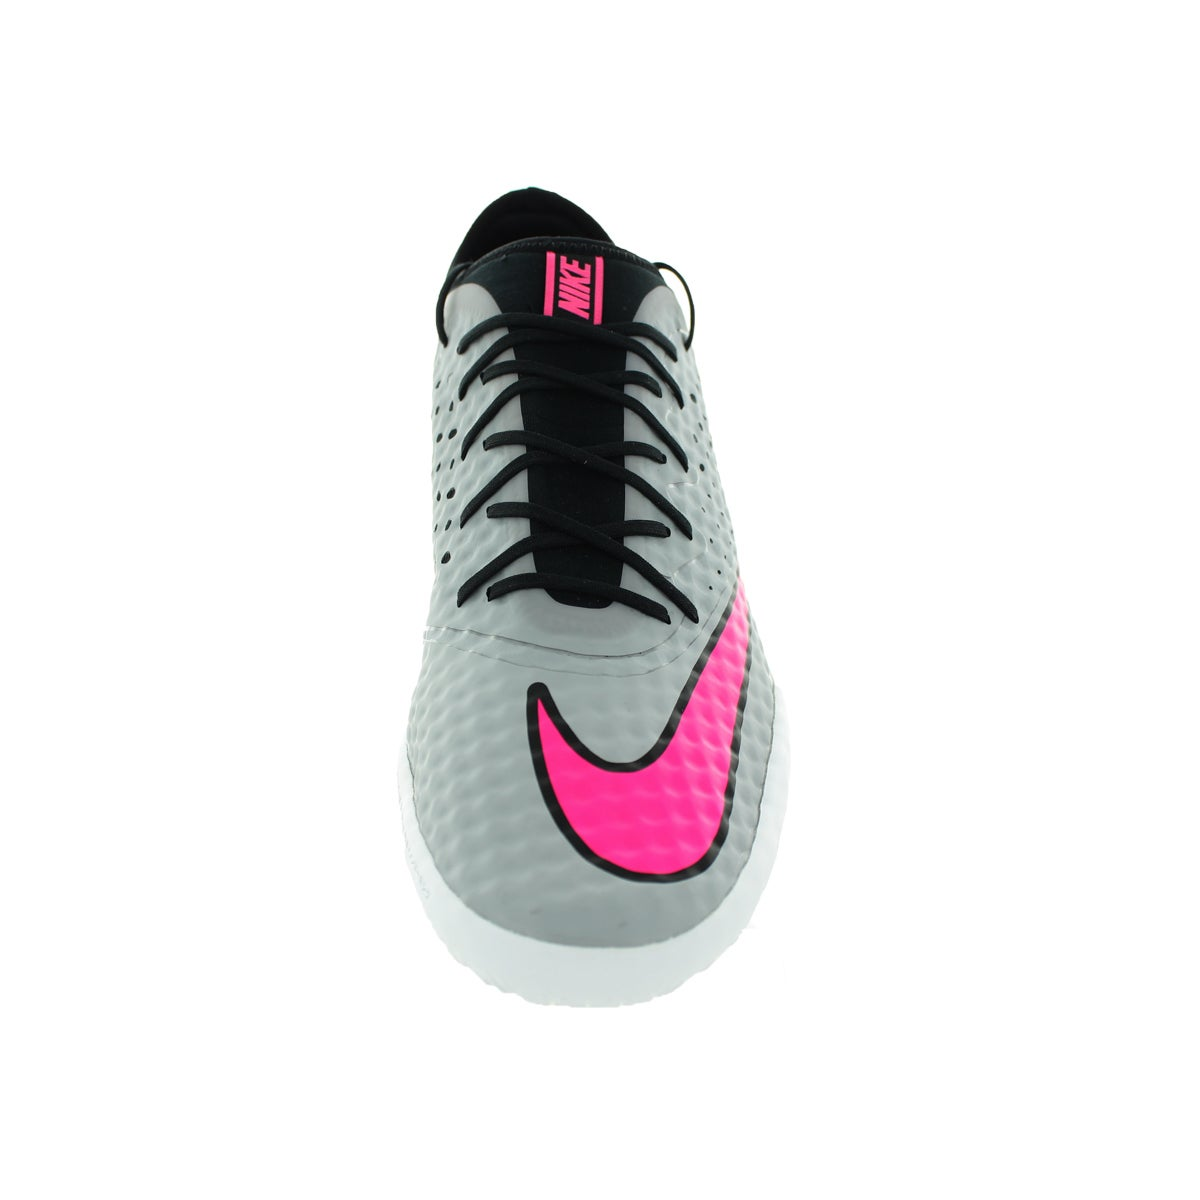 ... cheapest shop nike mens mercurialx finale ic wolf grey hyper pink white  black indoor soccer shoe ... 0c6a1be84